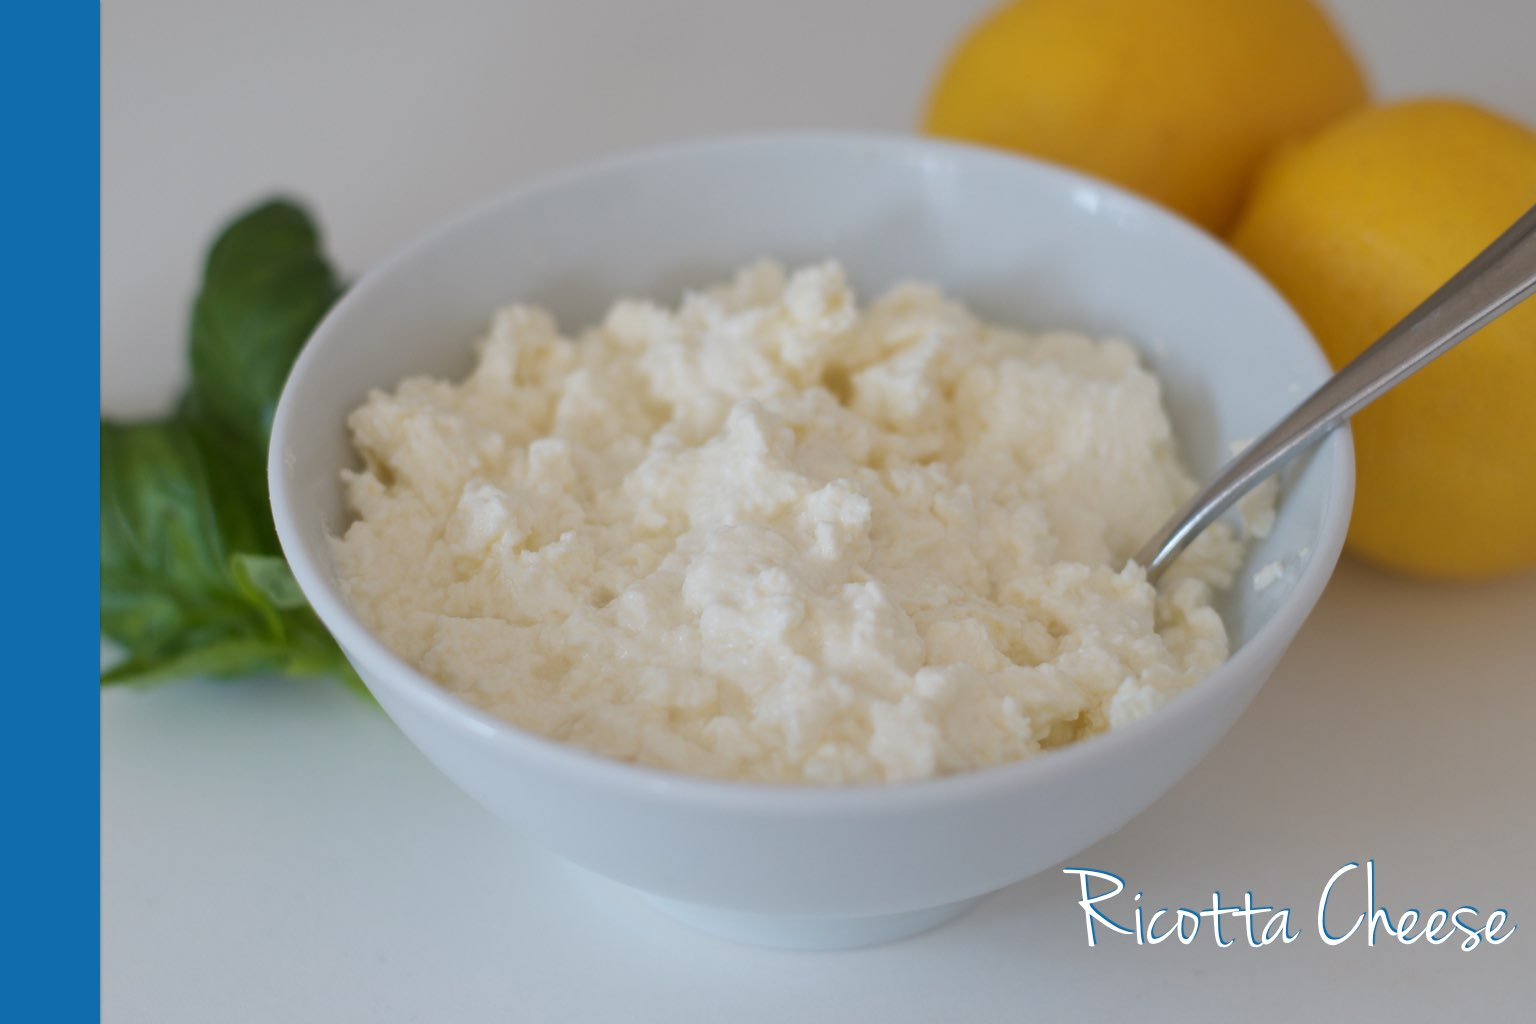 Ricotta Cheese_1